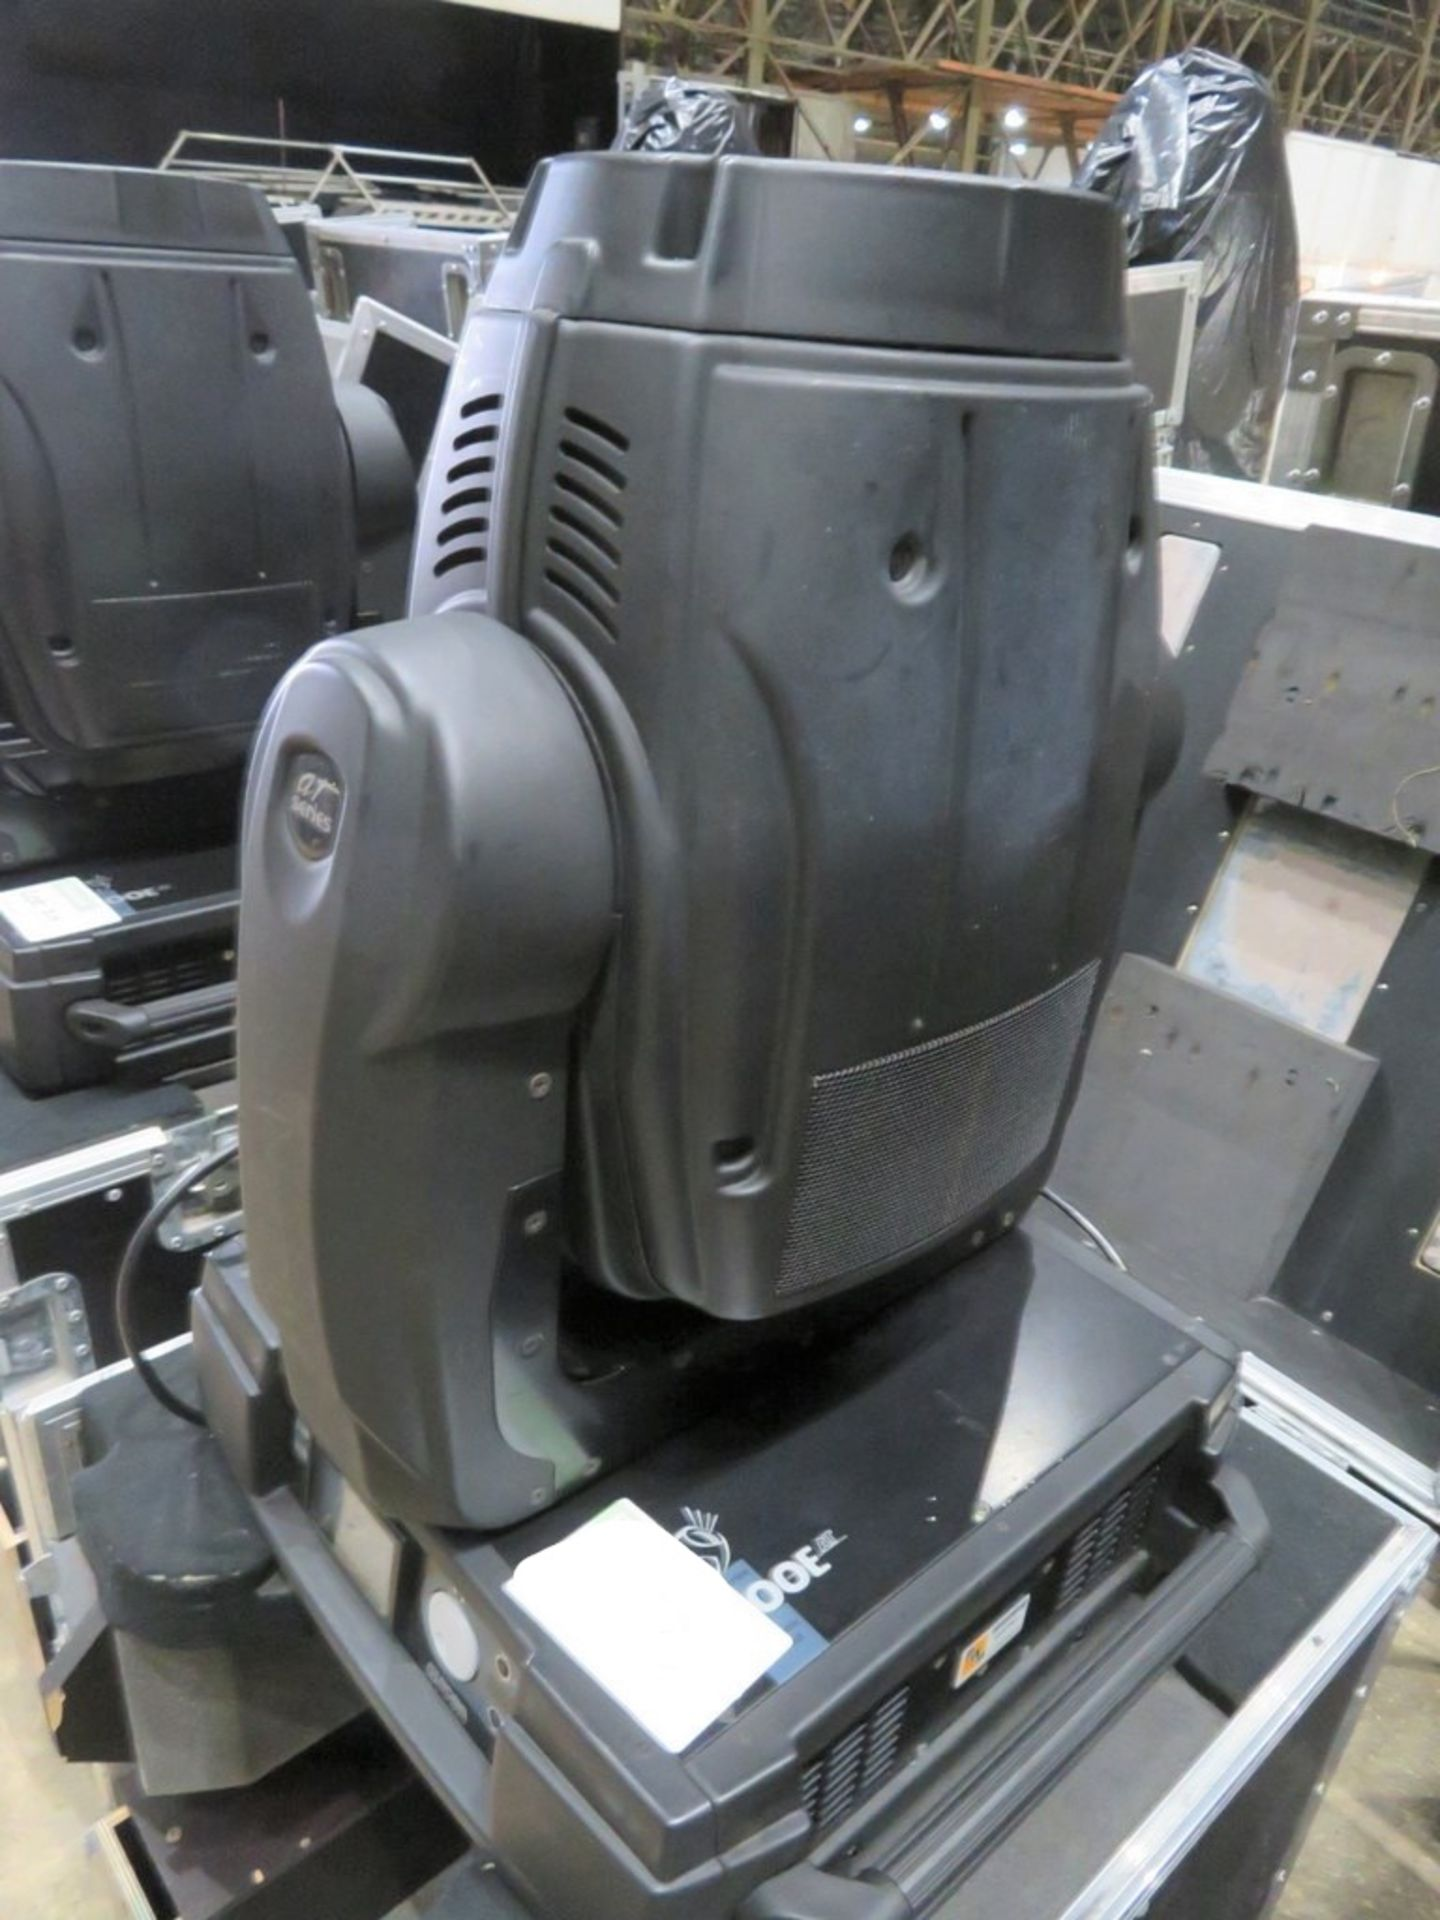 A Pair of Robe Colorwash 700E AT Moving Head Lights with flight case, 2021 PAT test, used lamp, - Image 2 of 2